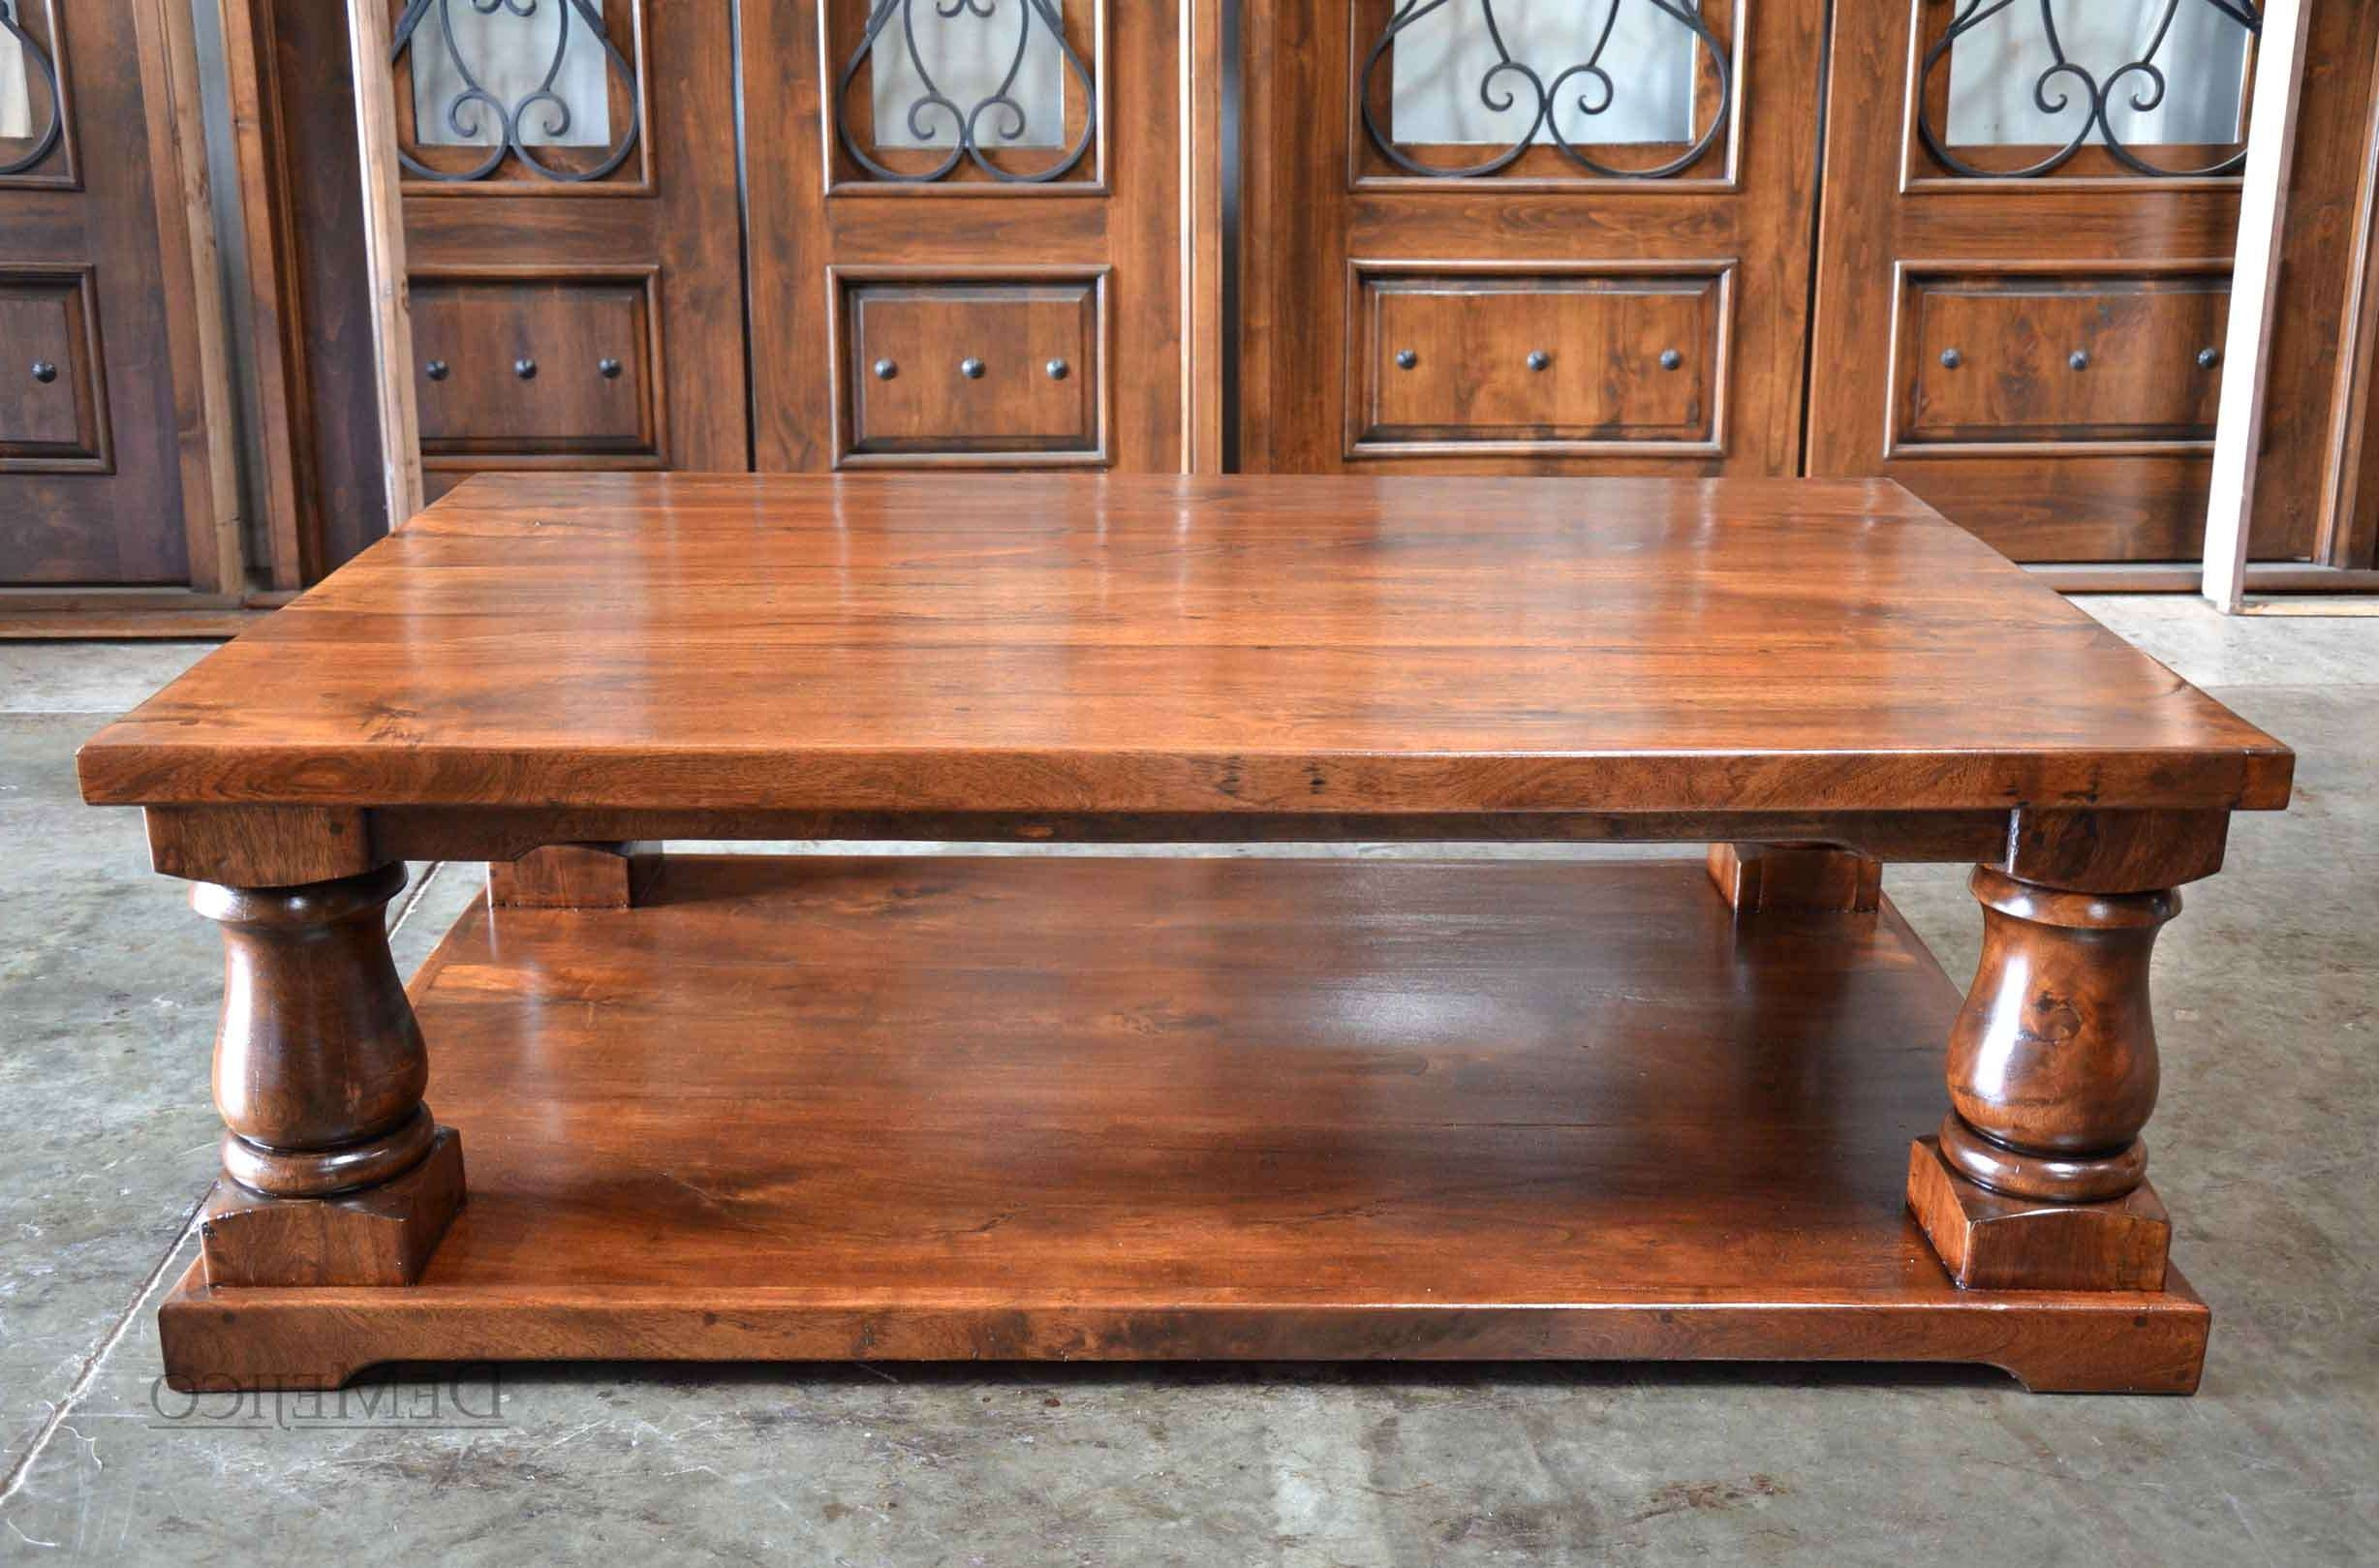 Latest Large Low Rustic Coffee Tables Regarding Coffee Table : Magnificent Large Wood Coffee Table Large Coffee (View 2 of 20)